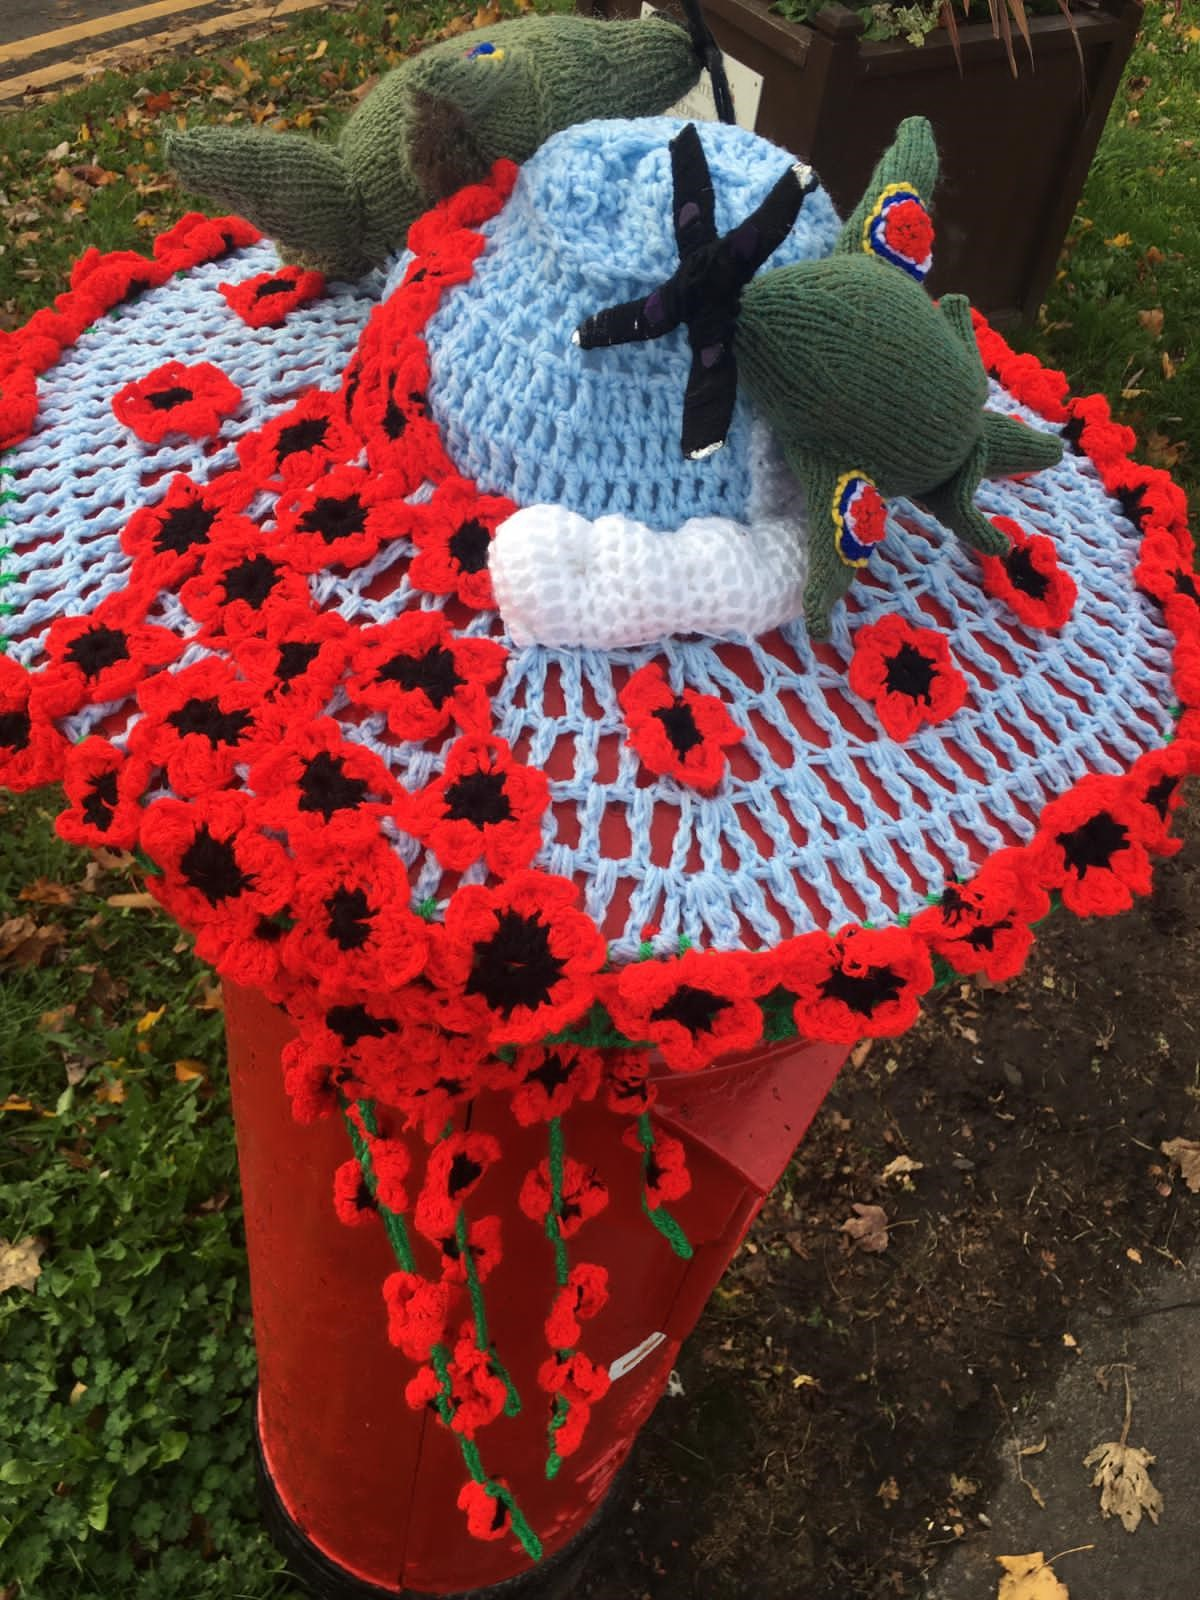 Who has created this 'poppy power' display?